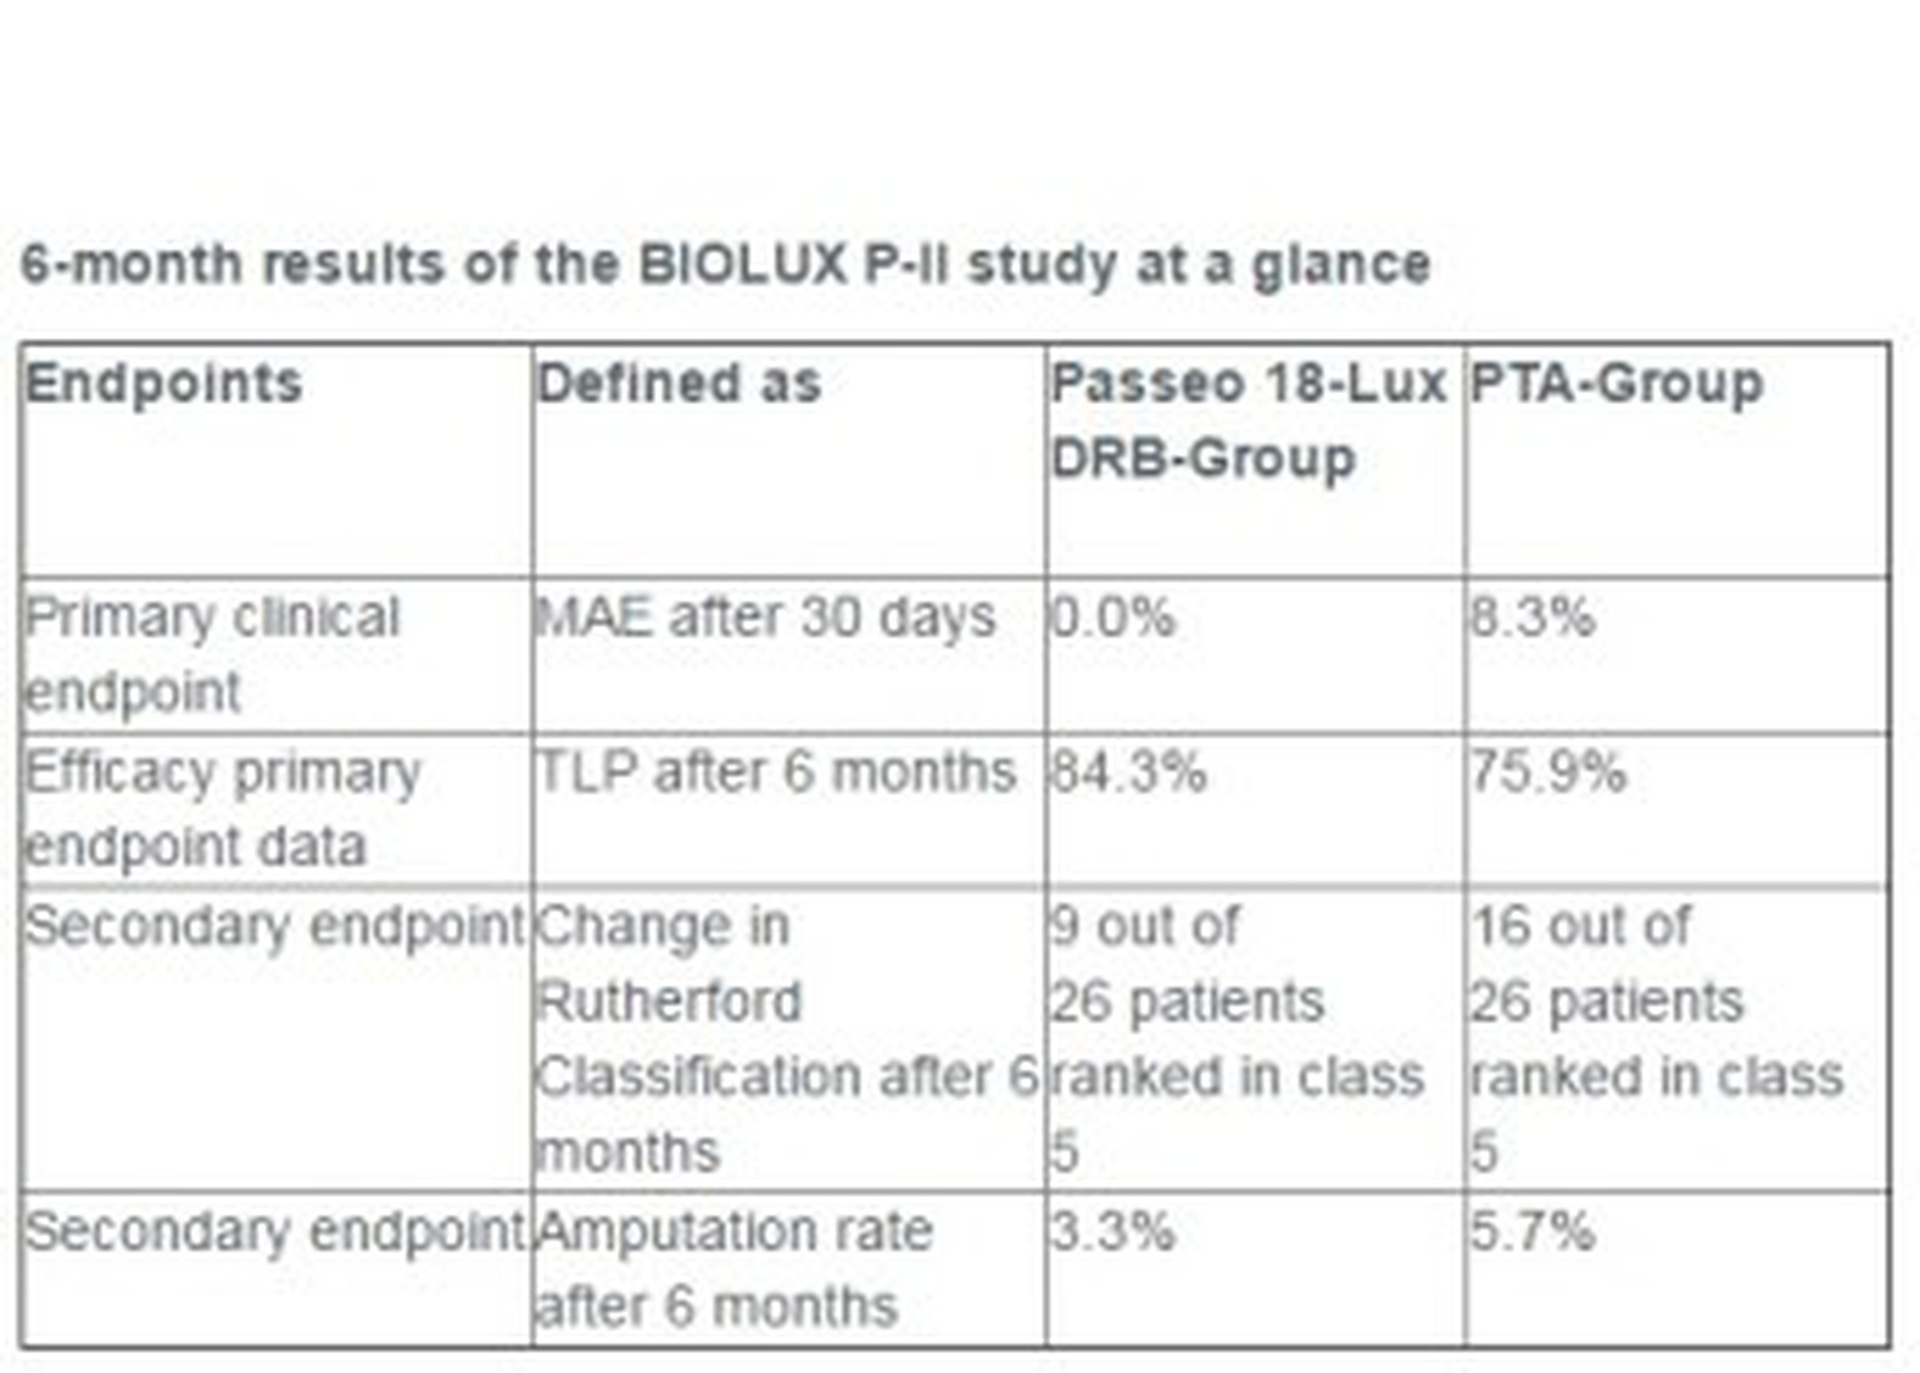 6-month results of the BIOLUX P-II study at a glance